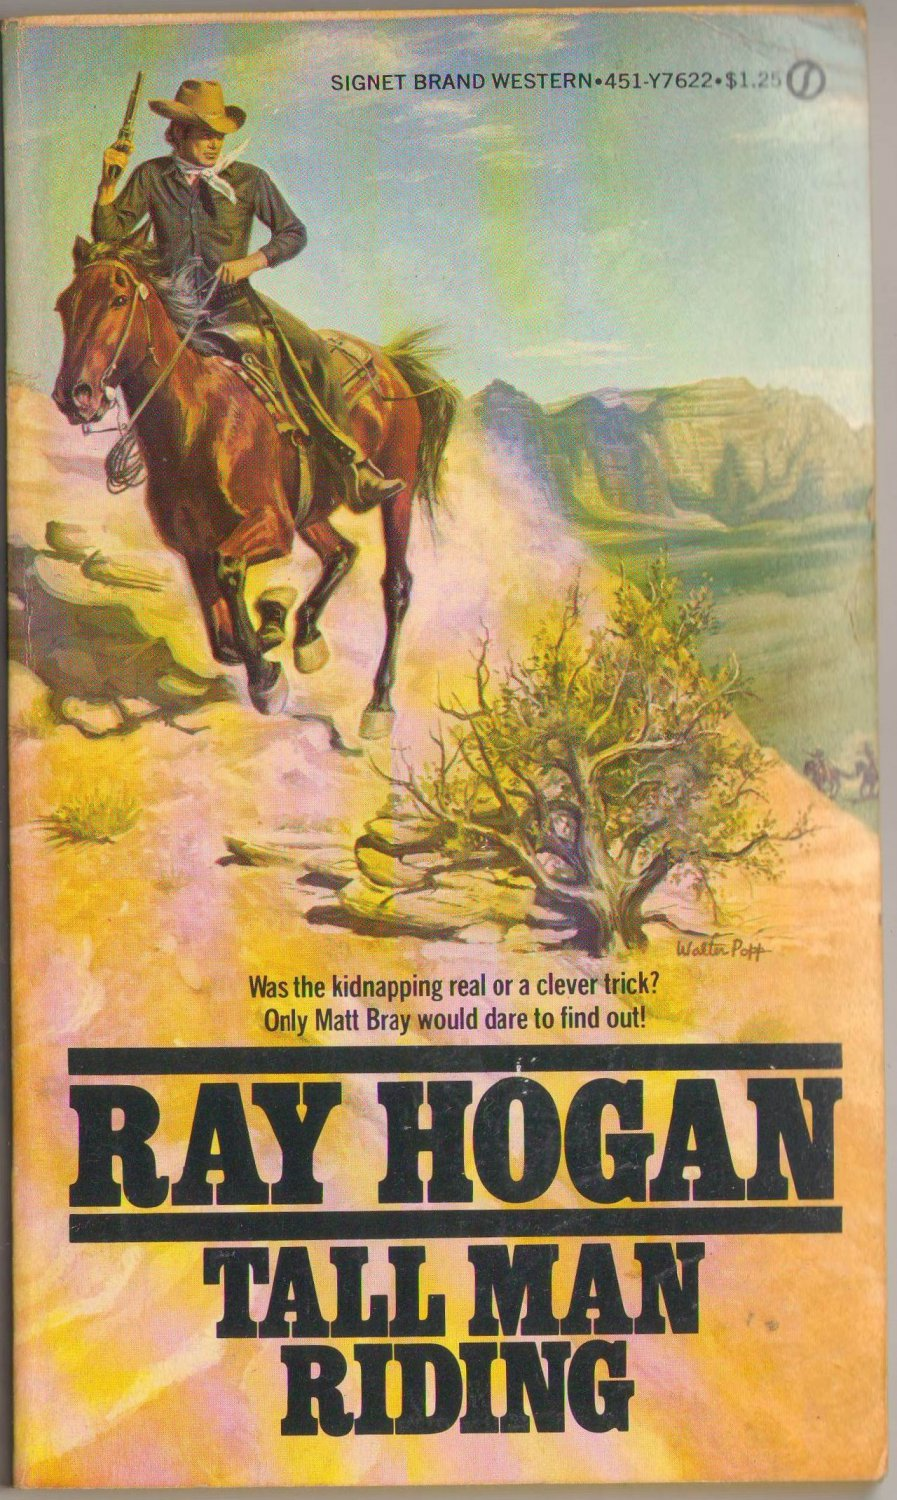 Tall Man Riding by Ray Hogan 1977 SMC